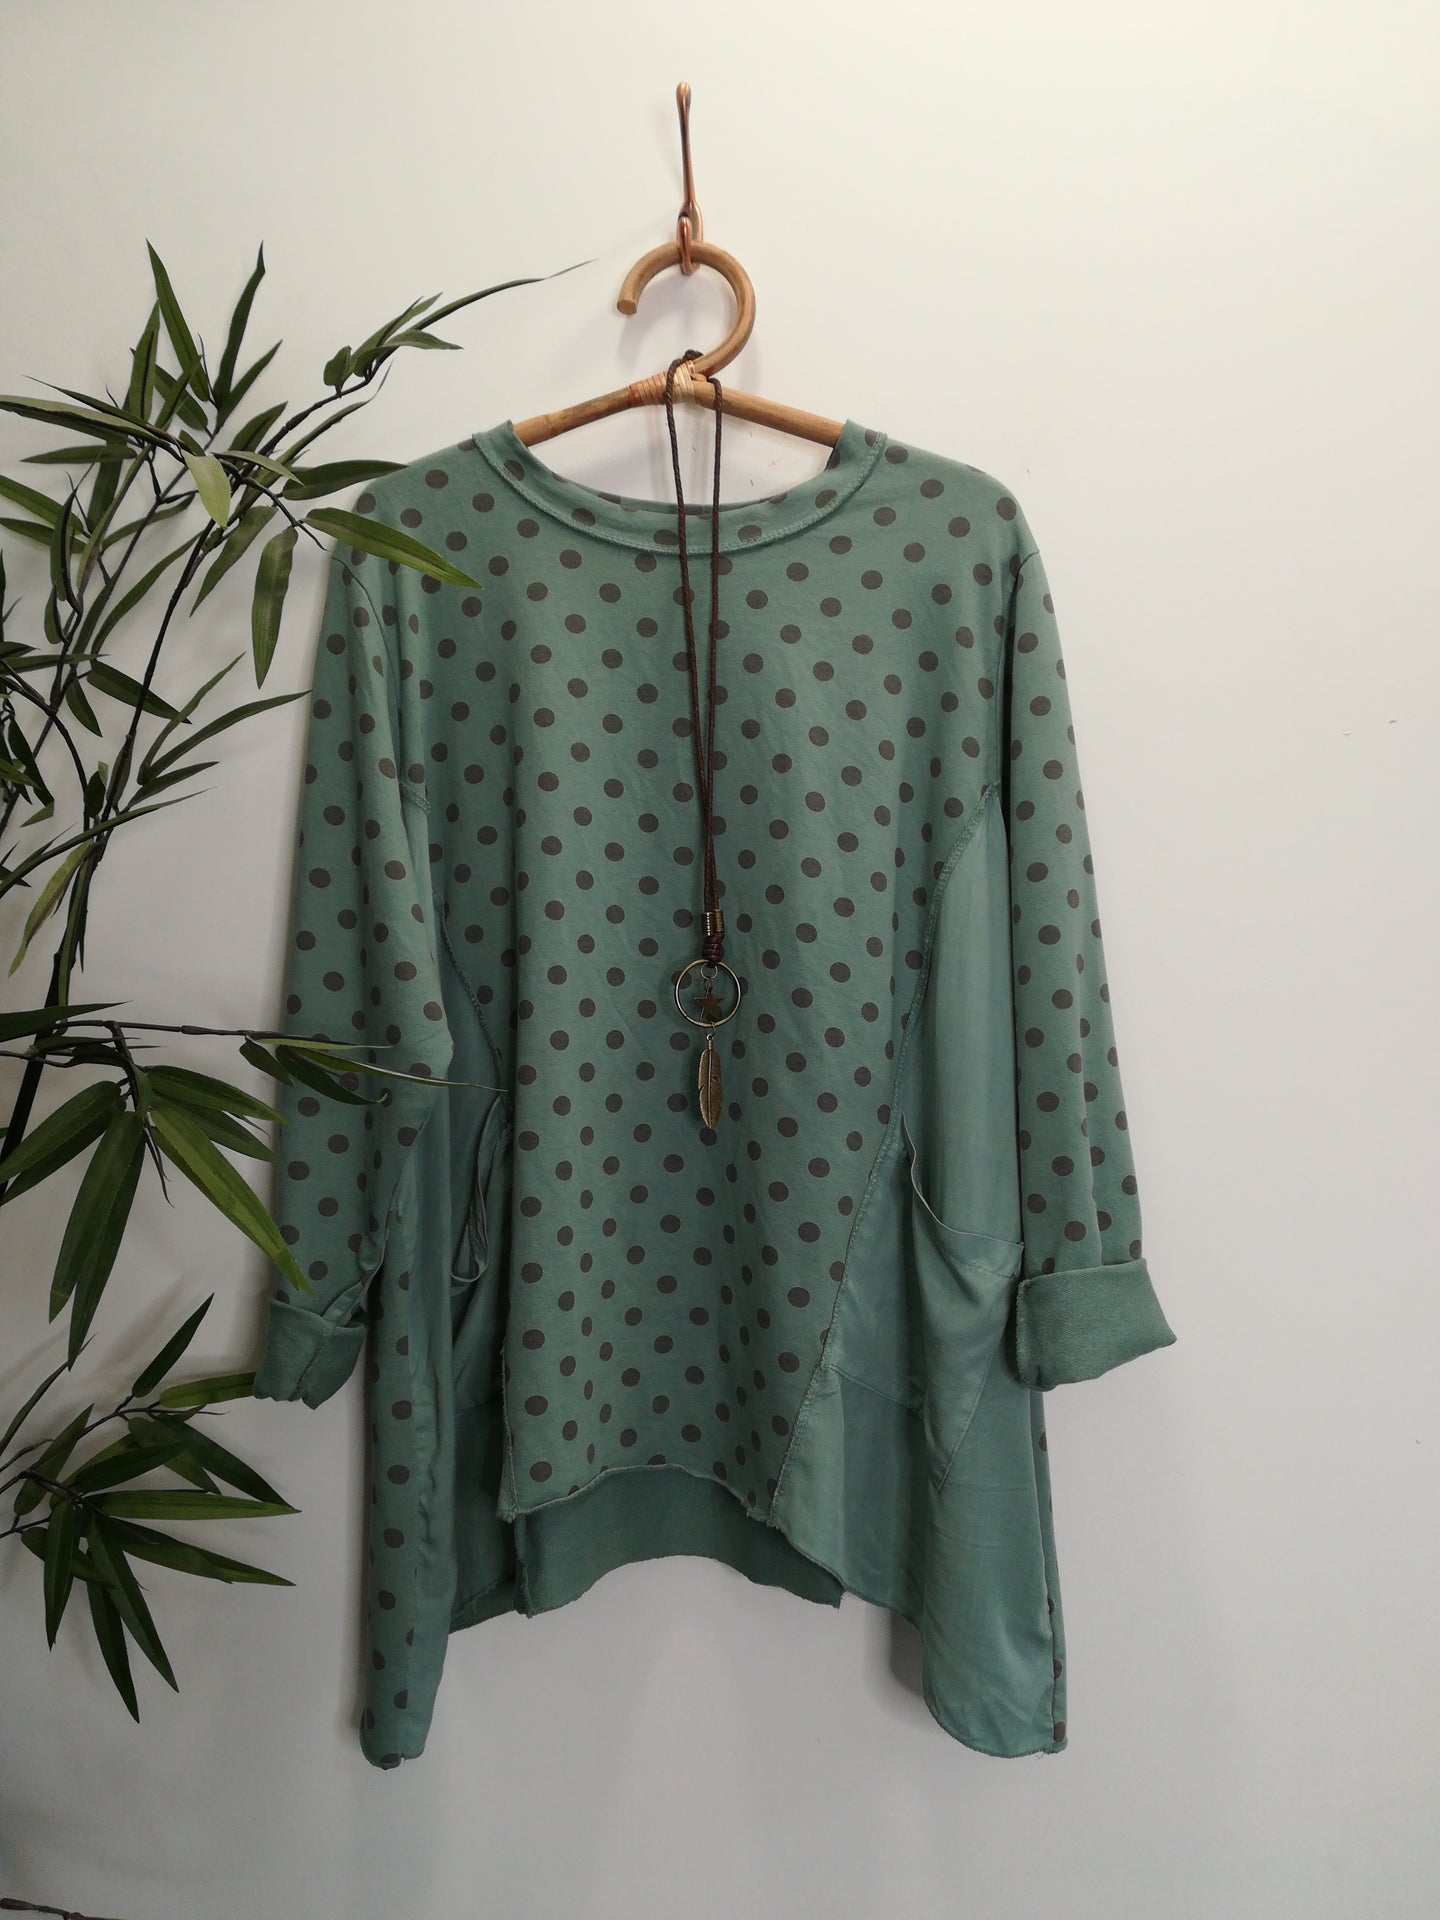 Sara Spotty Sweat Top & Necklace In Sage